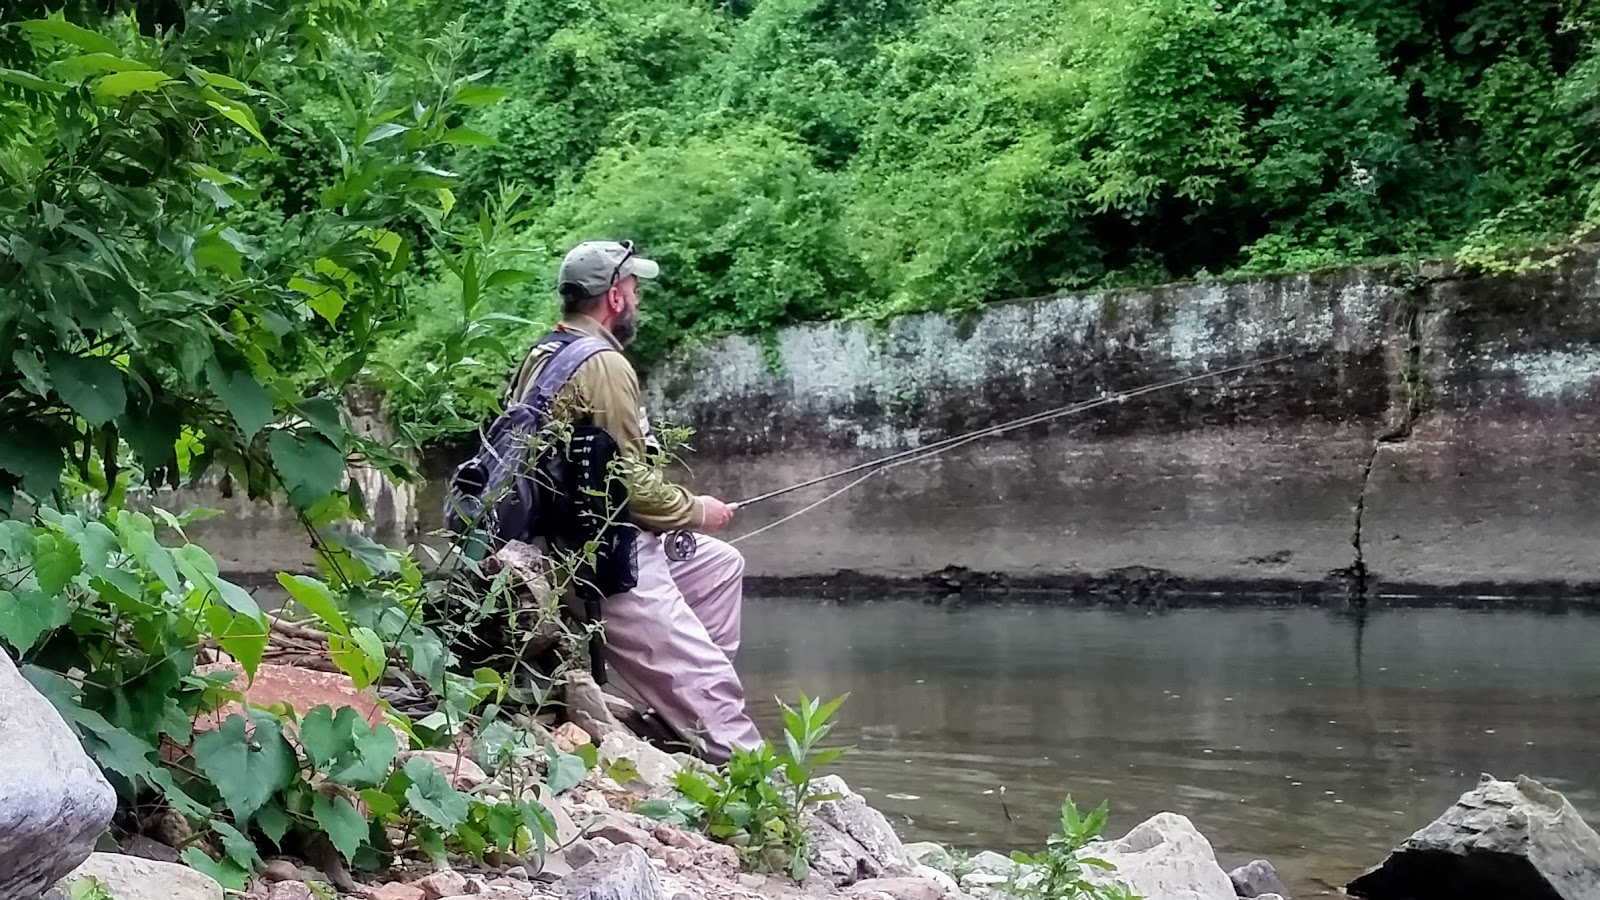 Sick days fishing july 6 2017 a good day not to wear for Pa fish for free days 2017